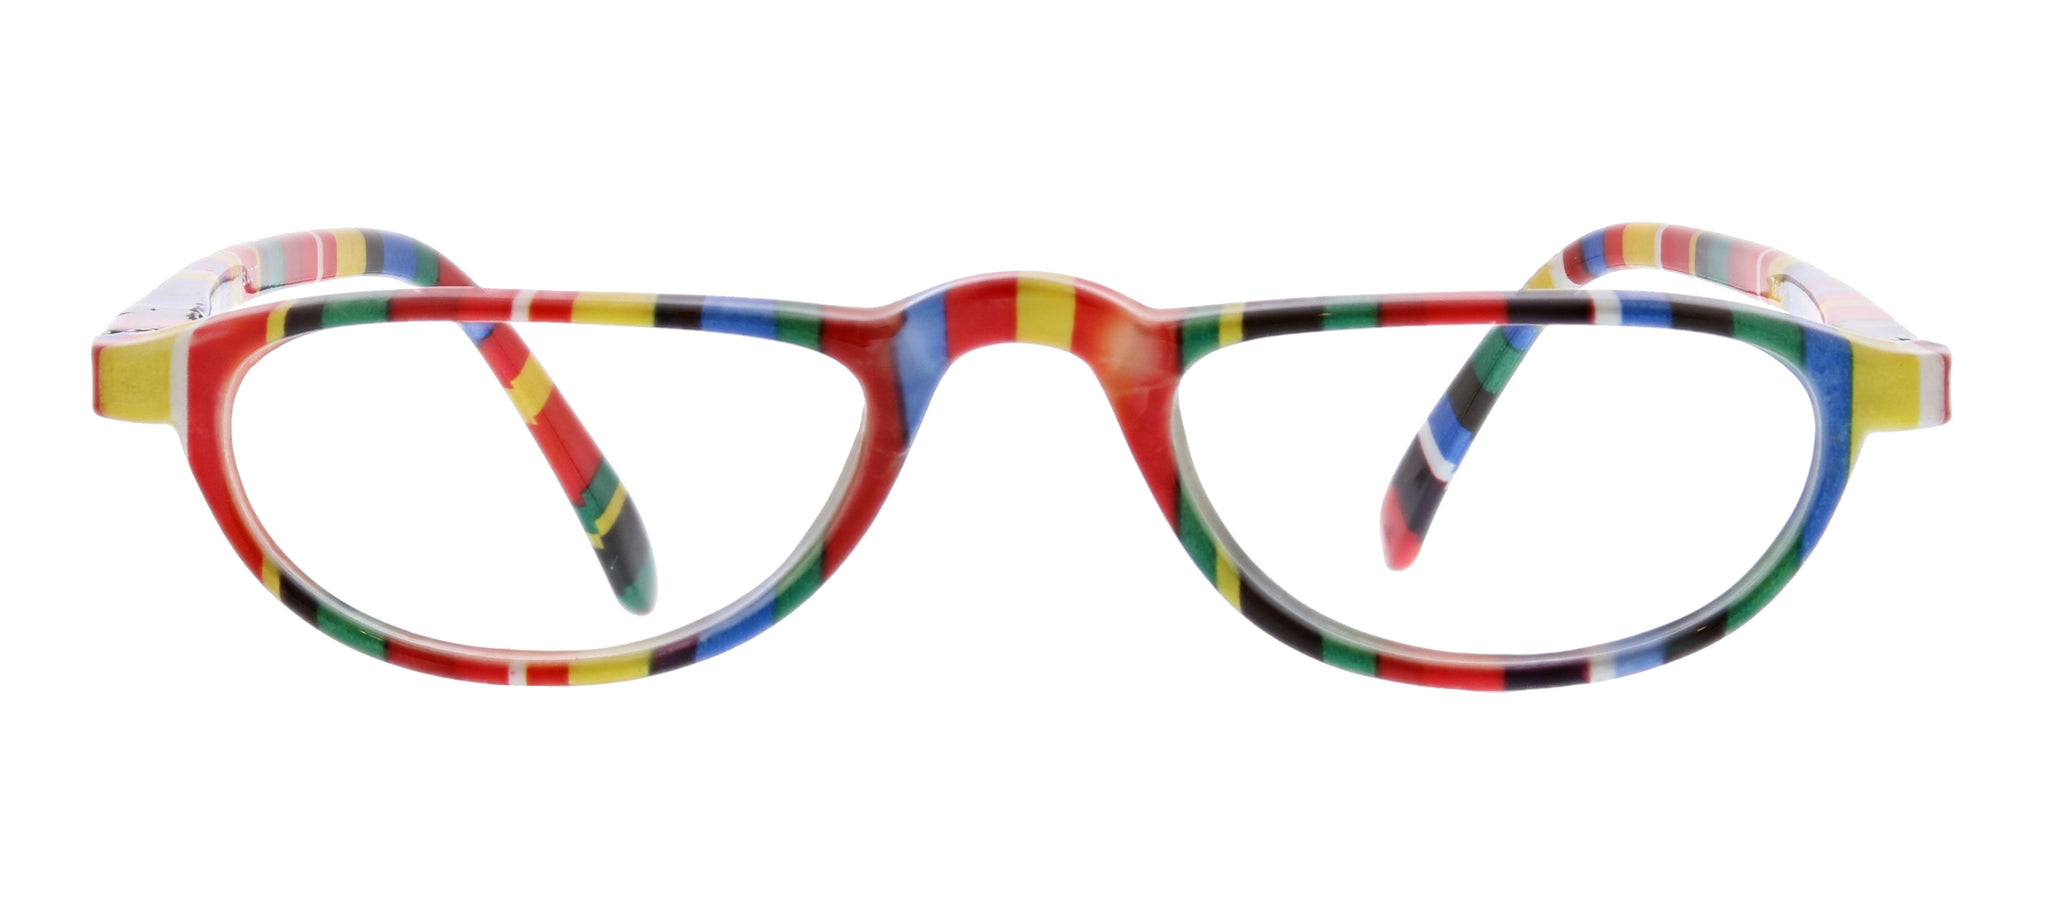 Fruit Stripe Gum multi-colored reading glasses by Peepers